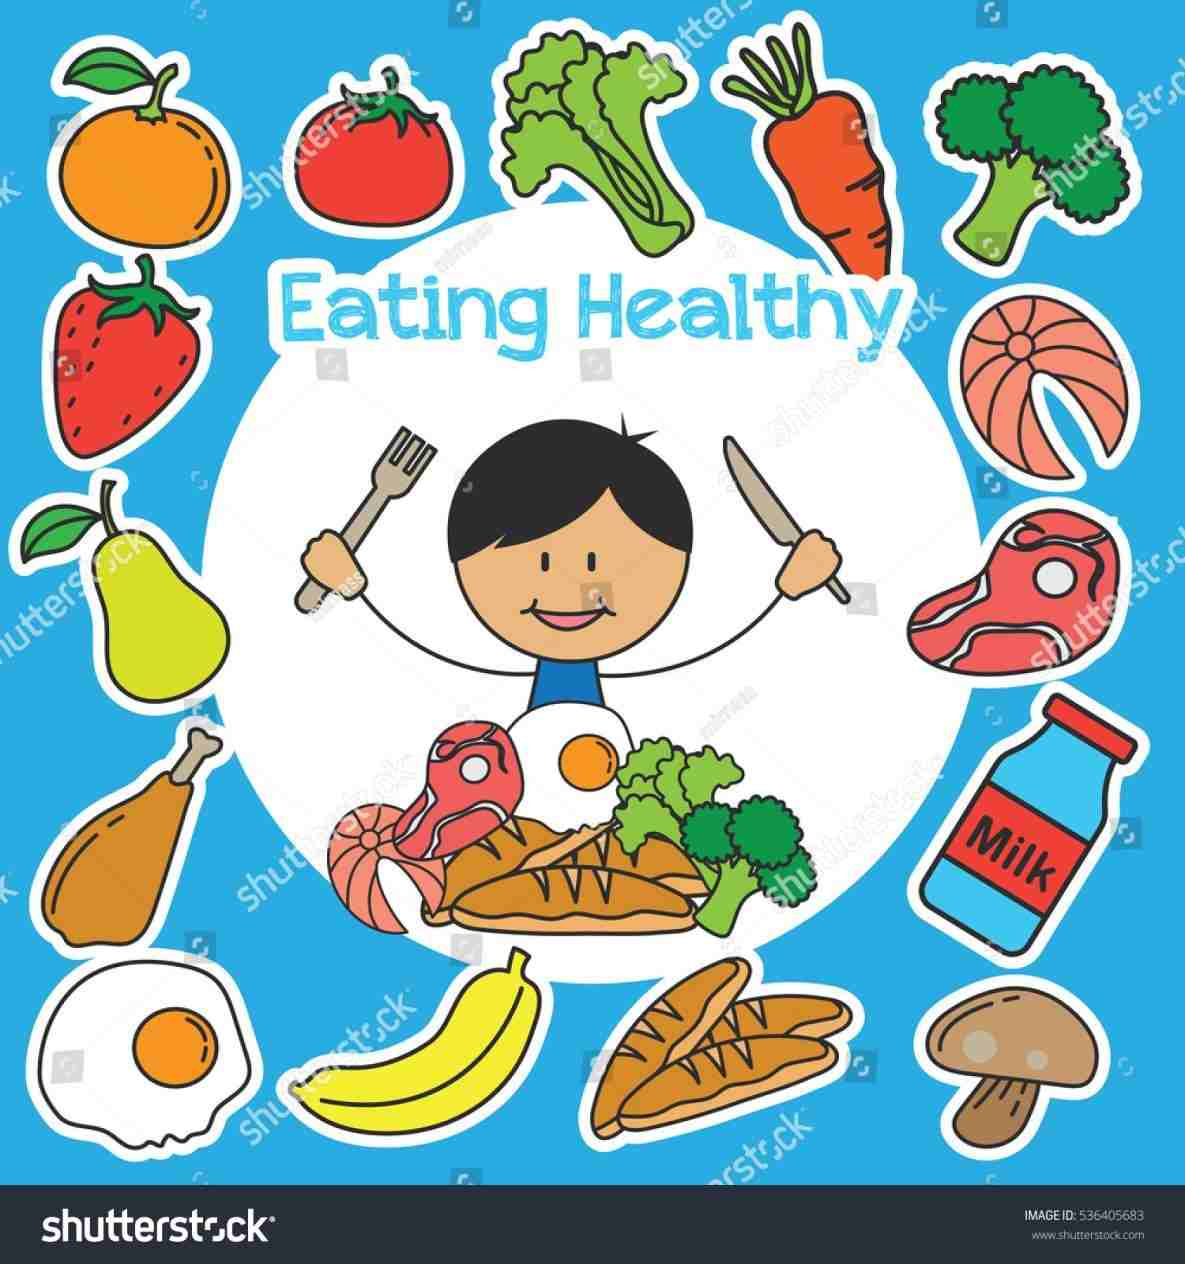 png free stock Healthy foods for kids clipart. Eating of .